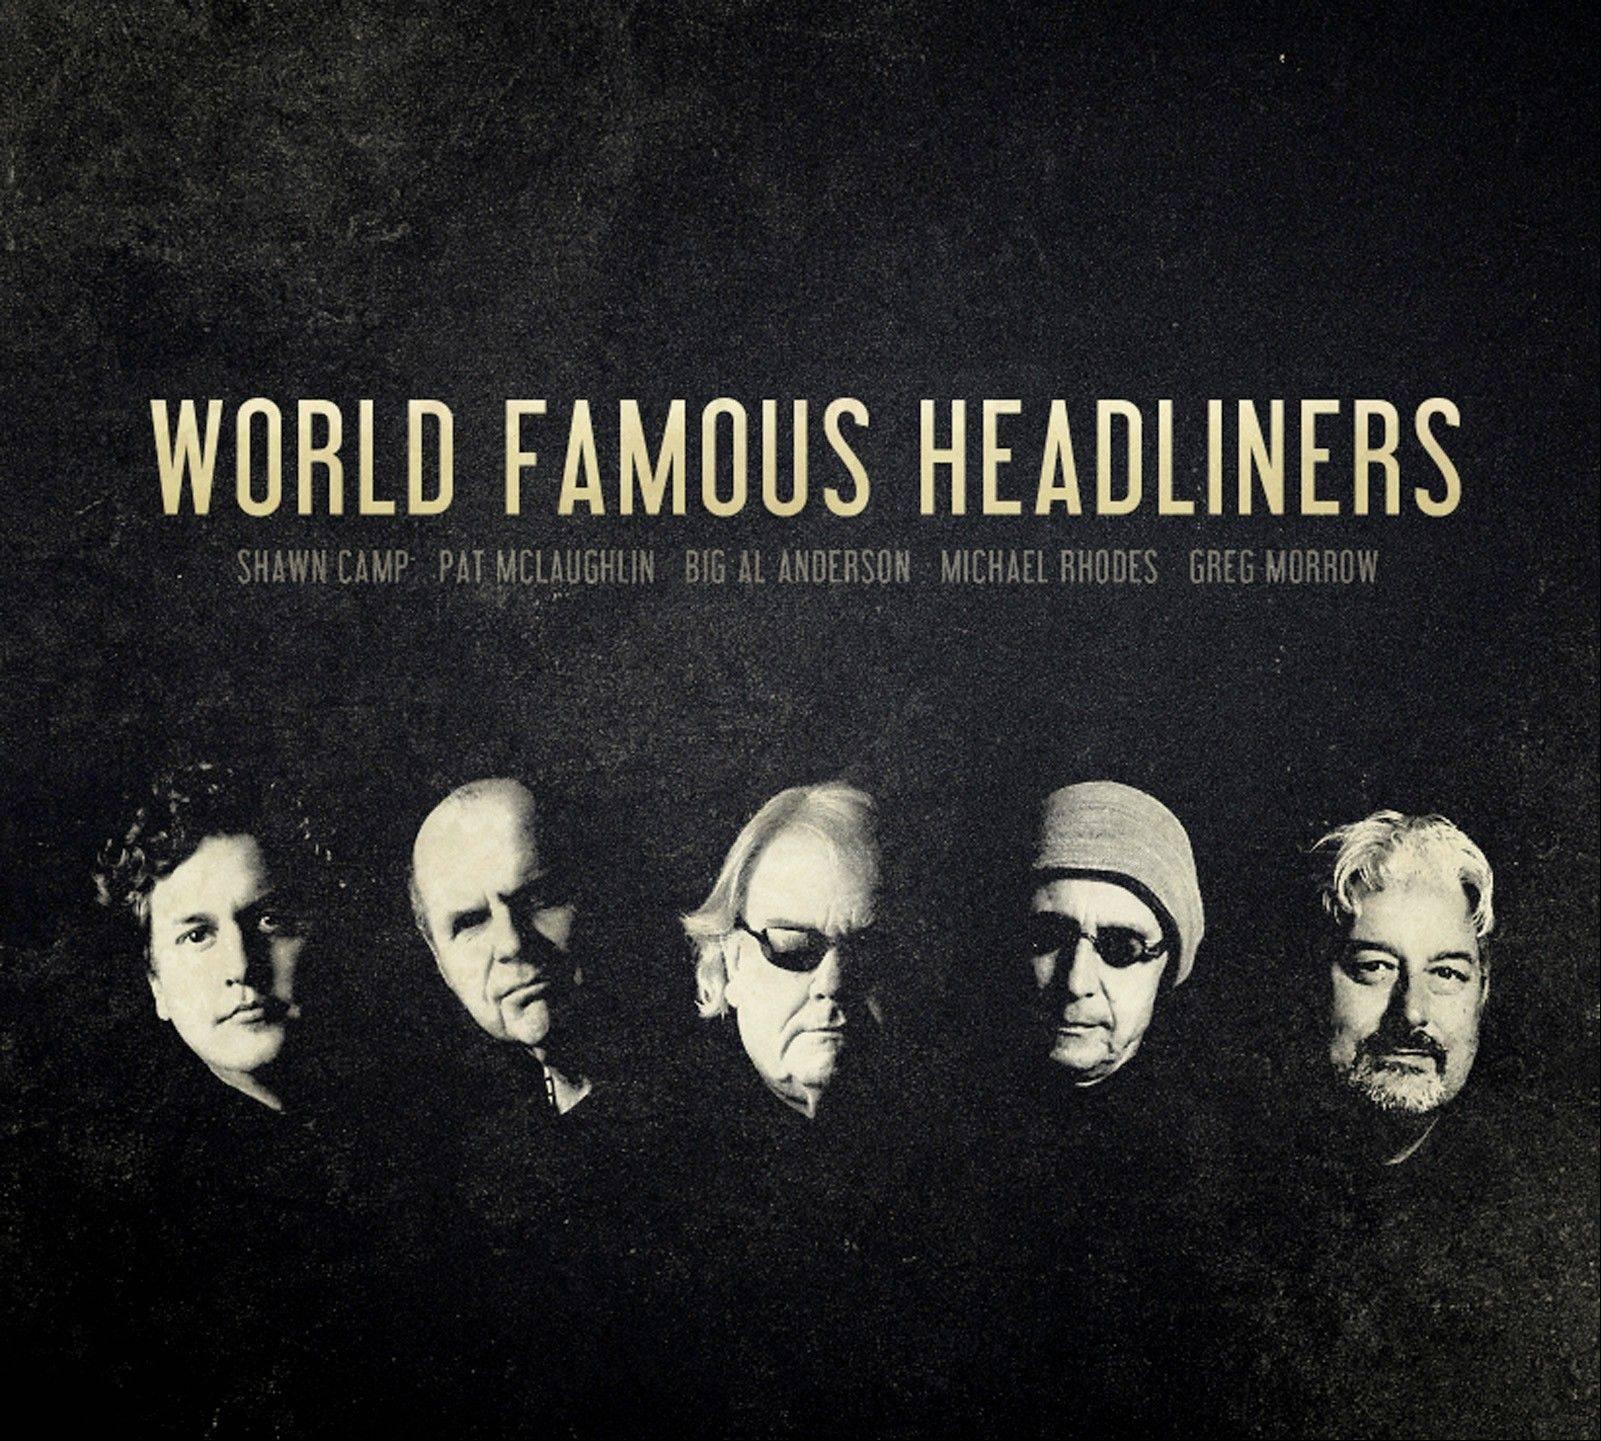 The self-titled release for the World Famous Headliners.